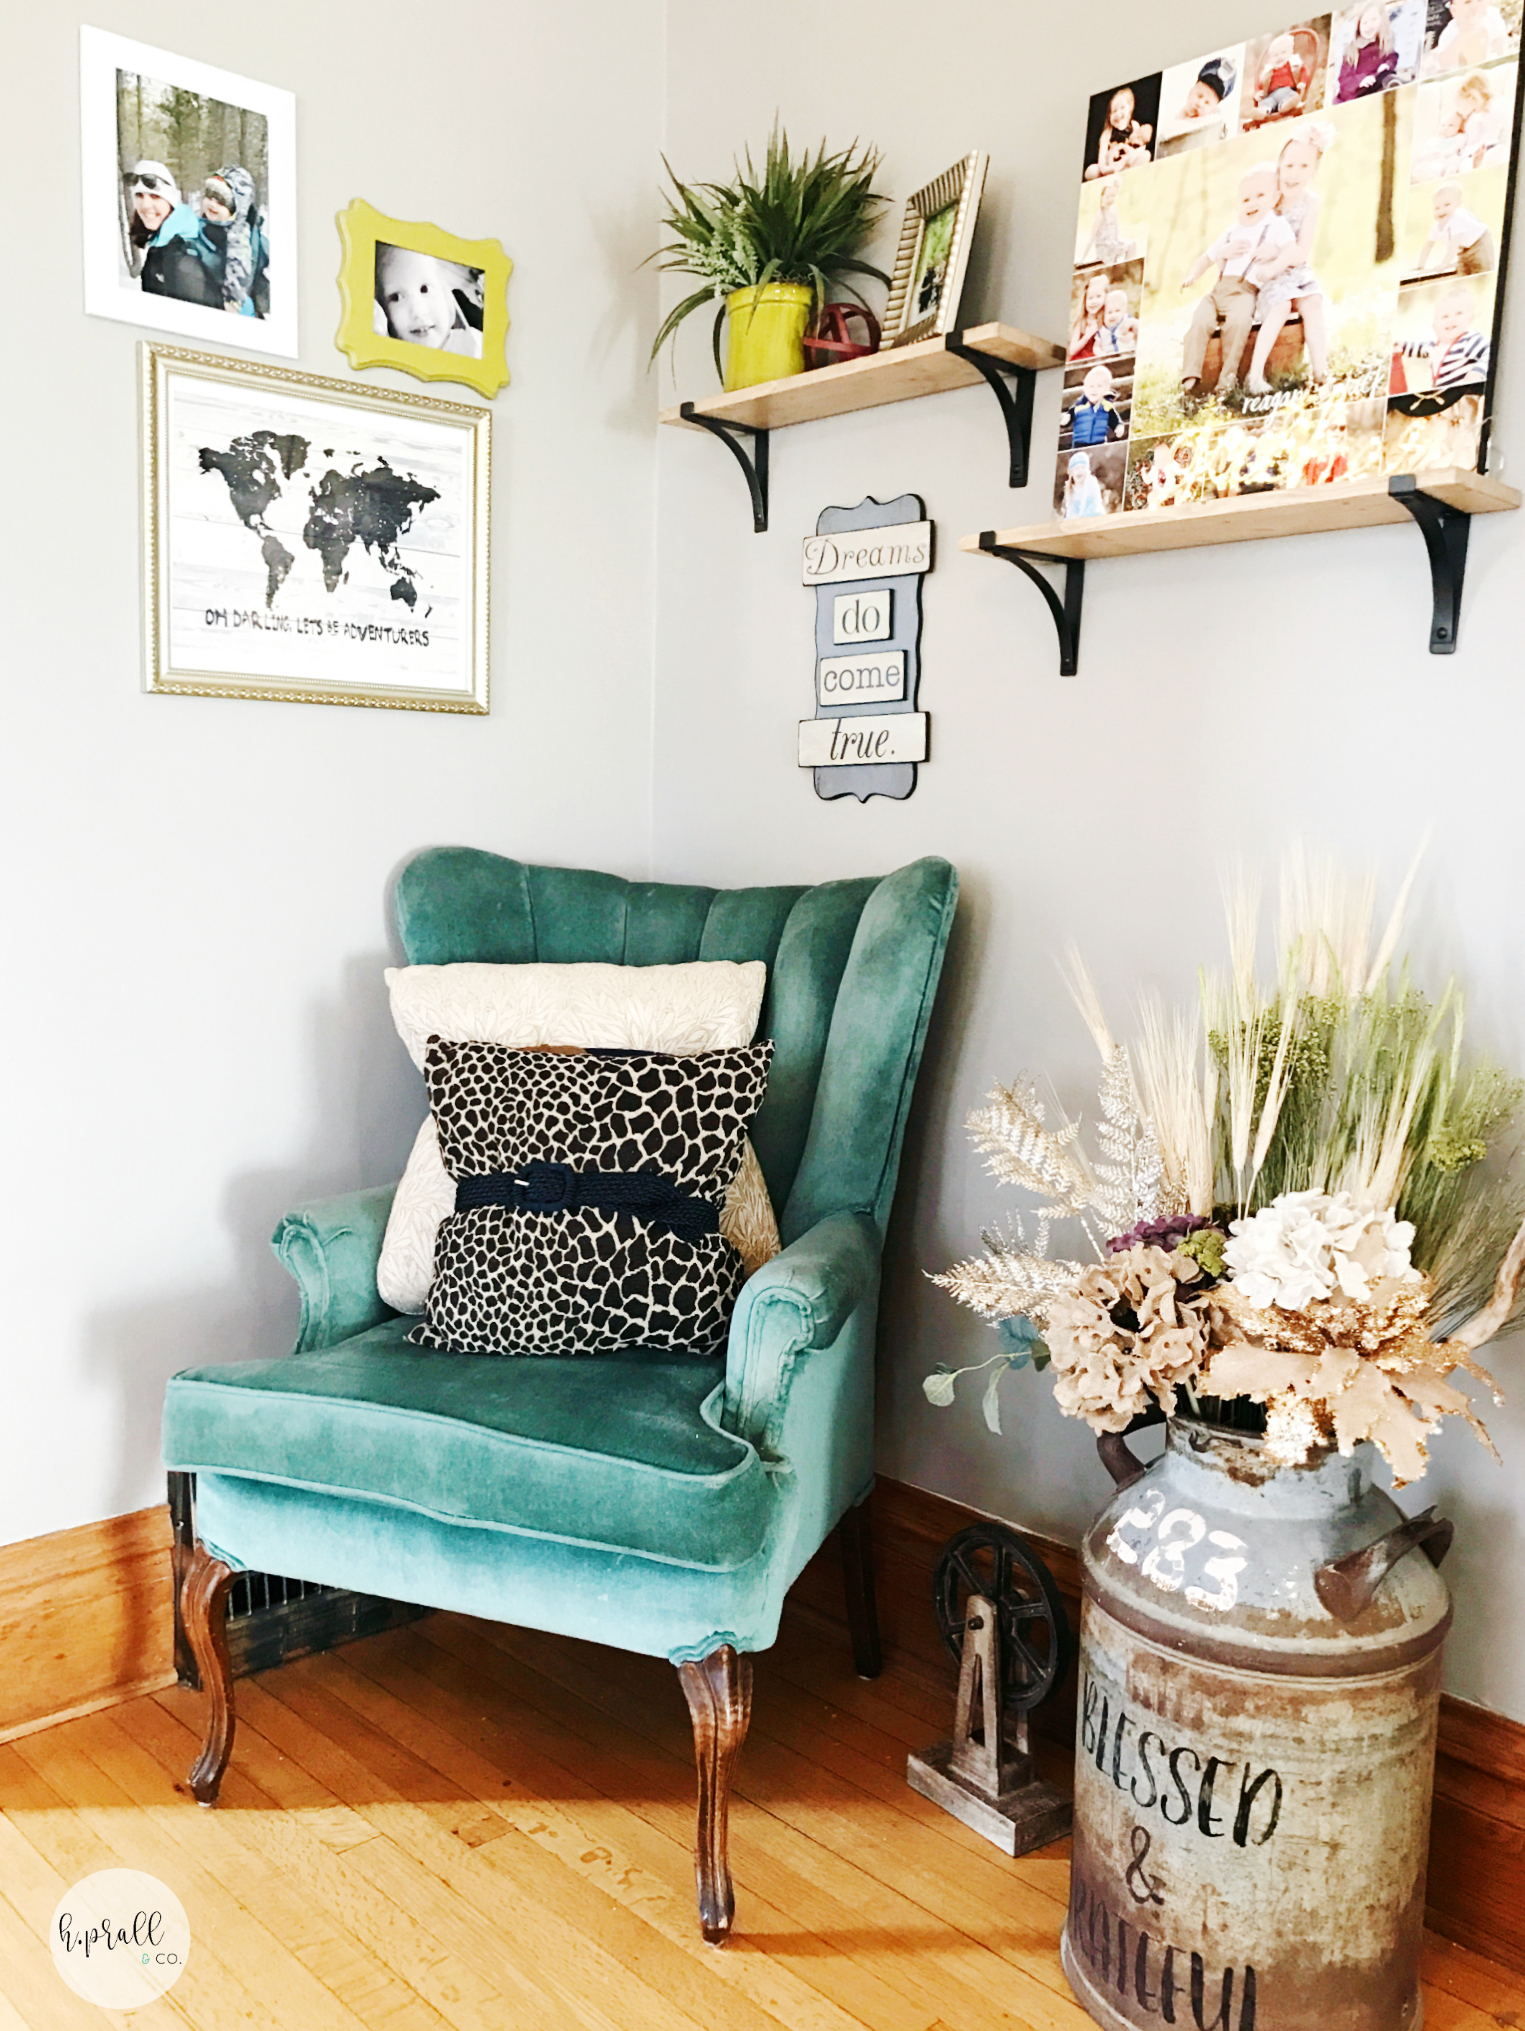 Dress-up your throw pillows with belts! Find out more at hprallandco.com